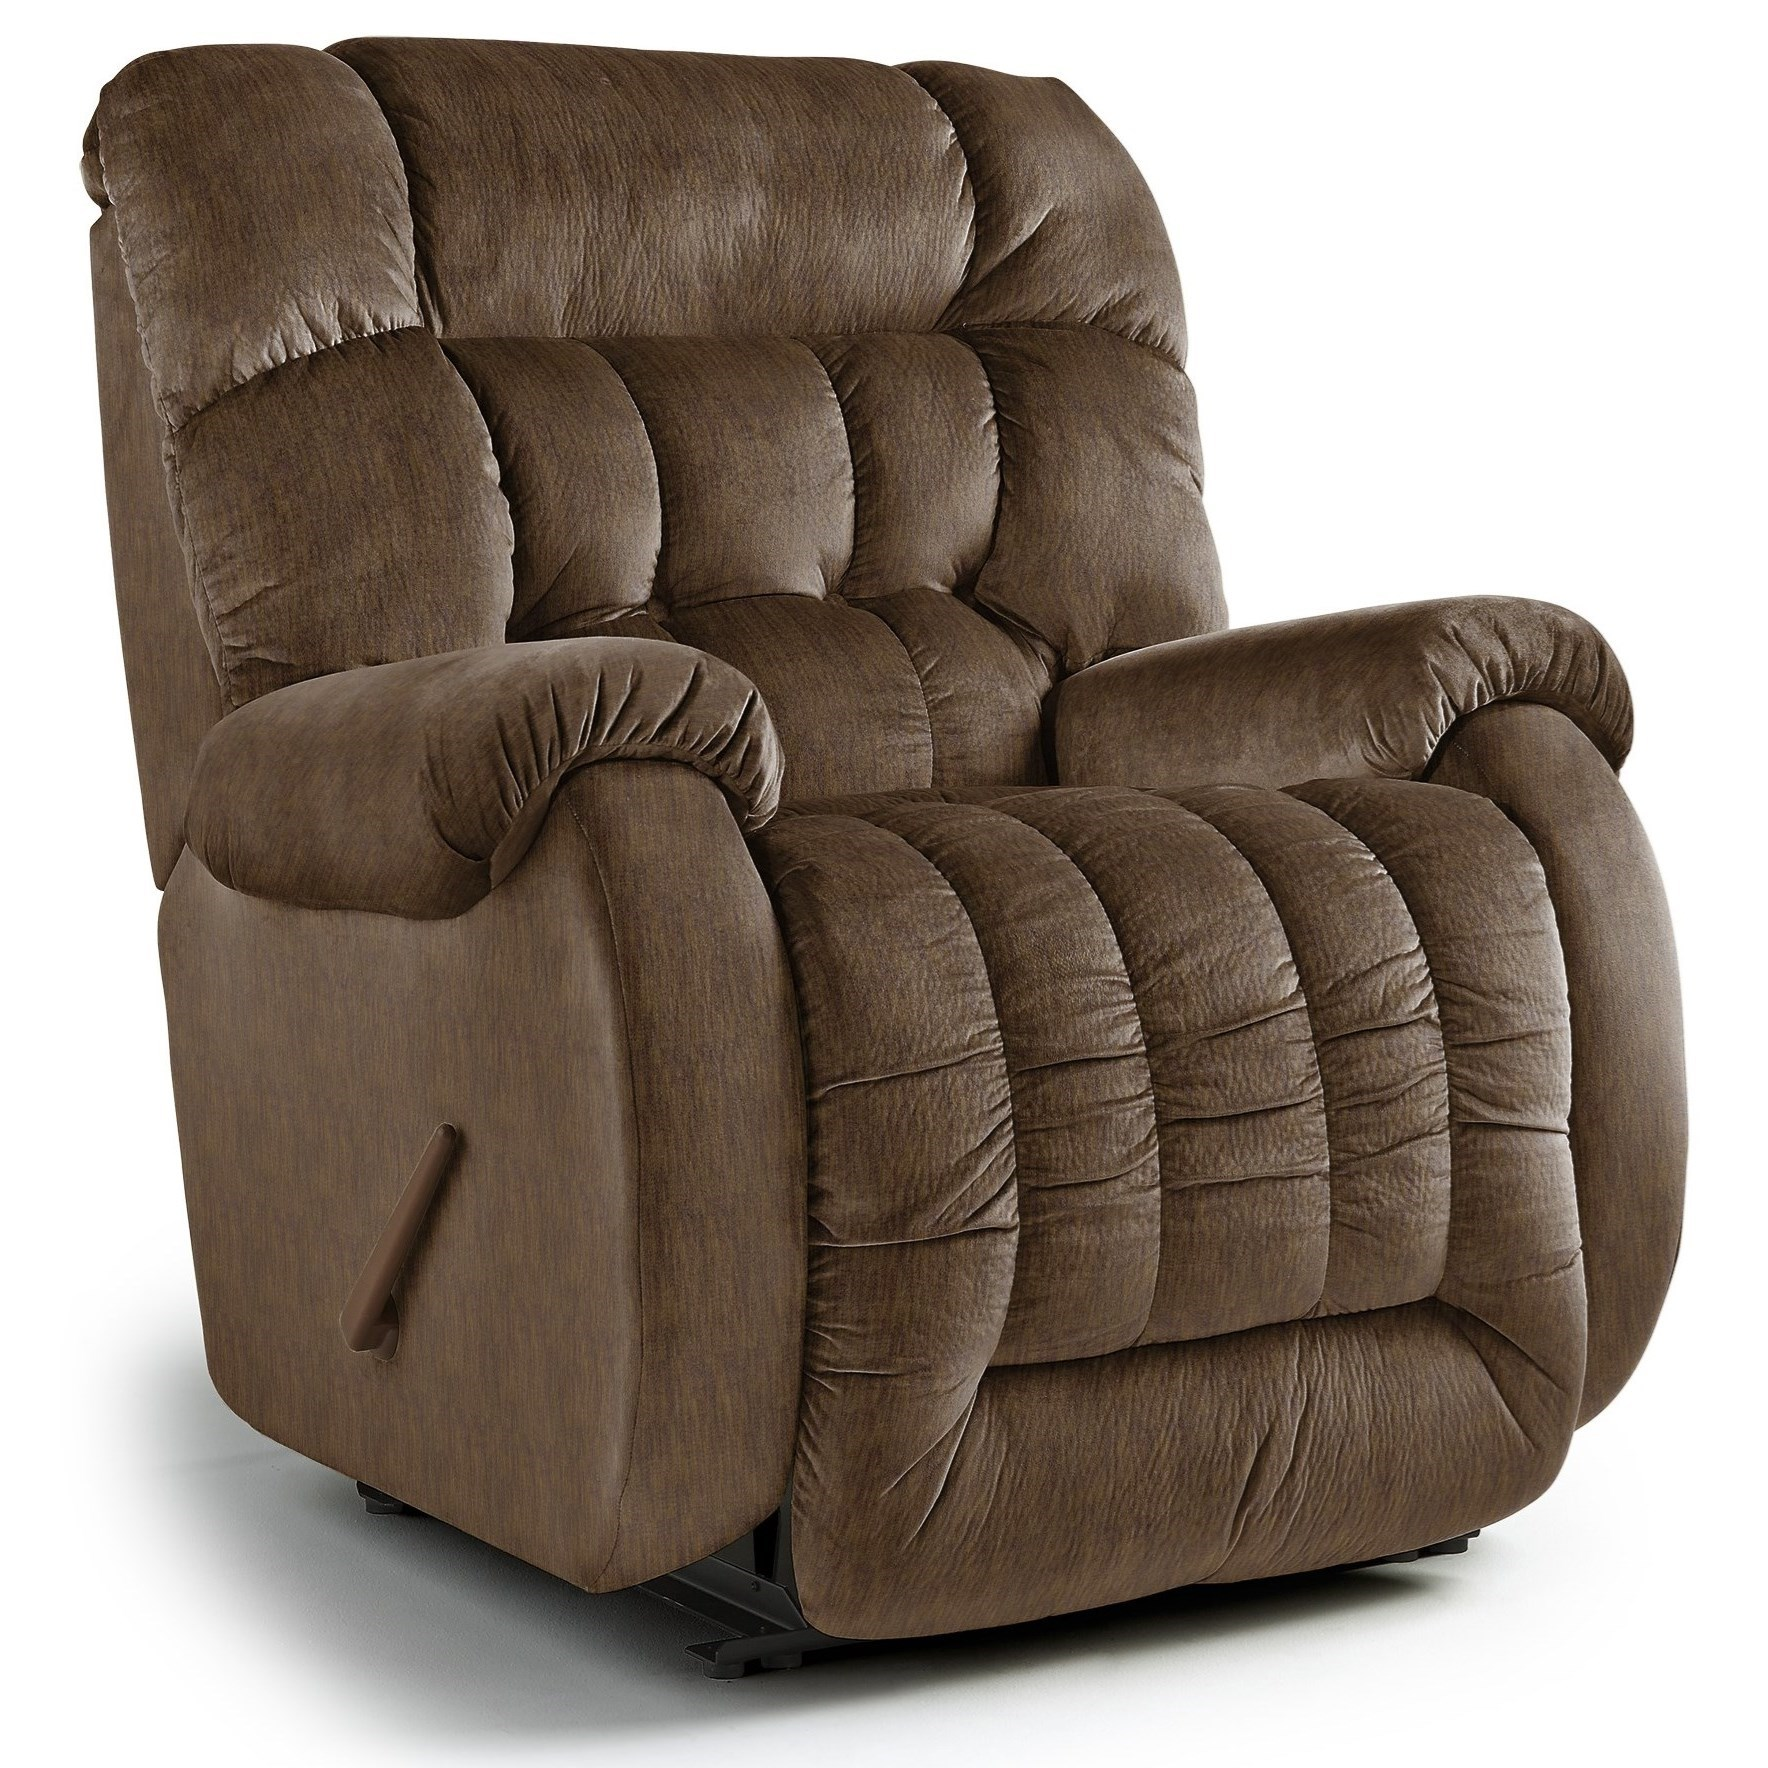 chair best furniture the wing westminster duty recliners microfiber heavy recliner back overstuffed beast ergonomic